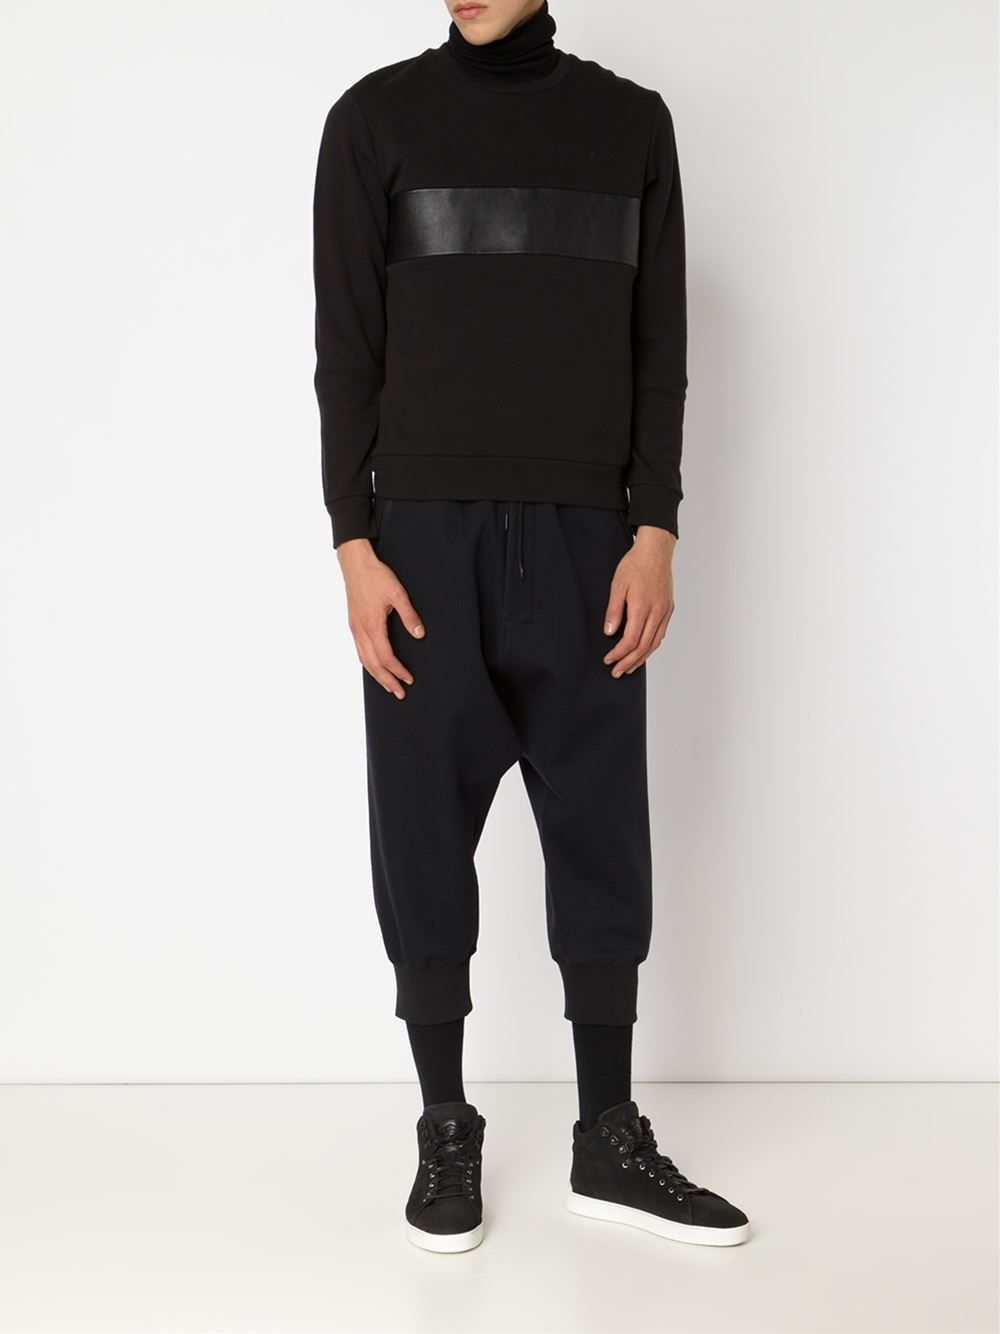 554ac50f1b2 Y-3 Dropped Crotch Track Pants - Gigi Tropea - Farfetch.com